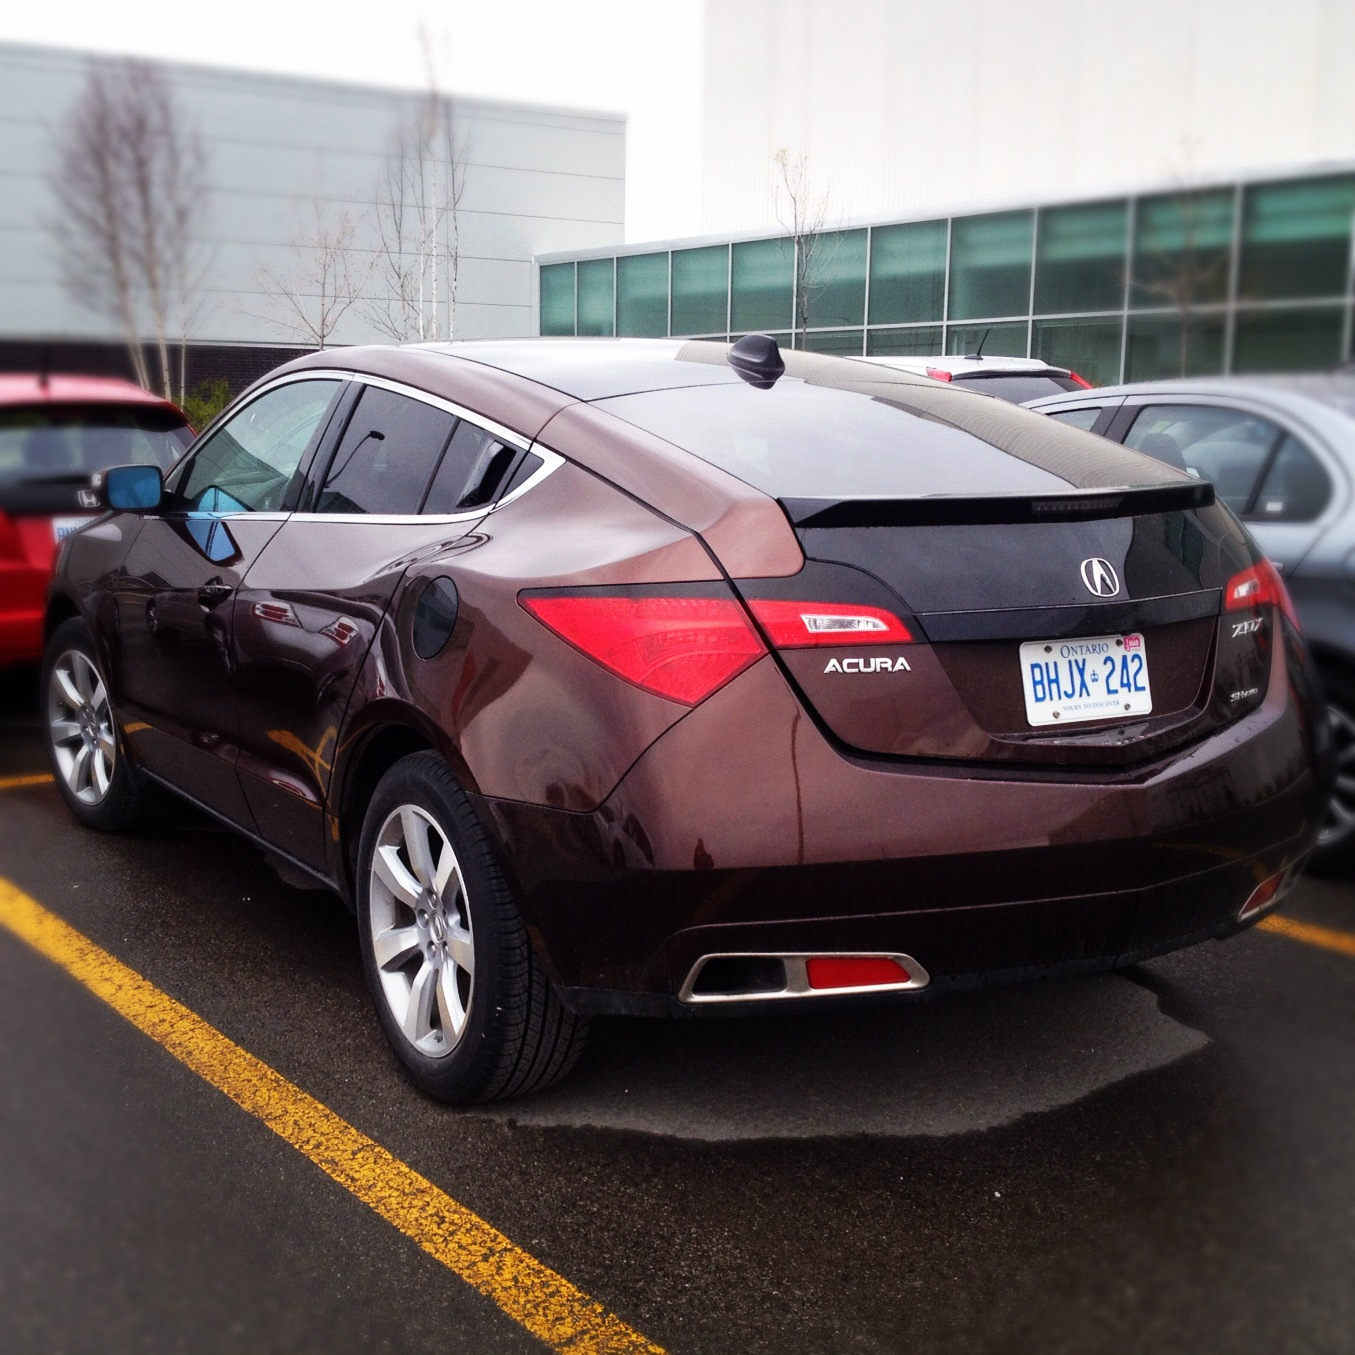 Acura Zdx Brown Car Pin X Cars Lets Talk About Cars